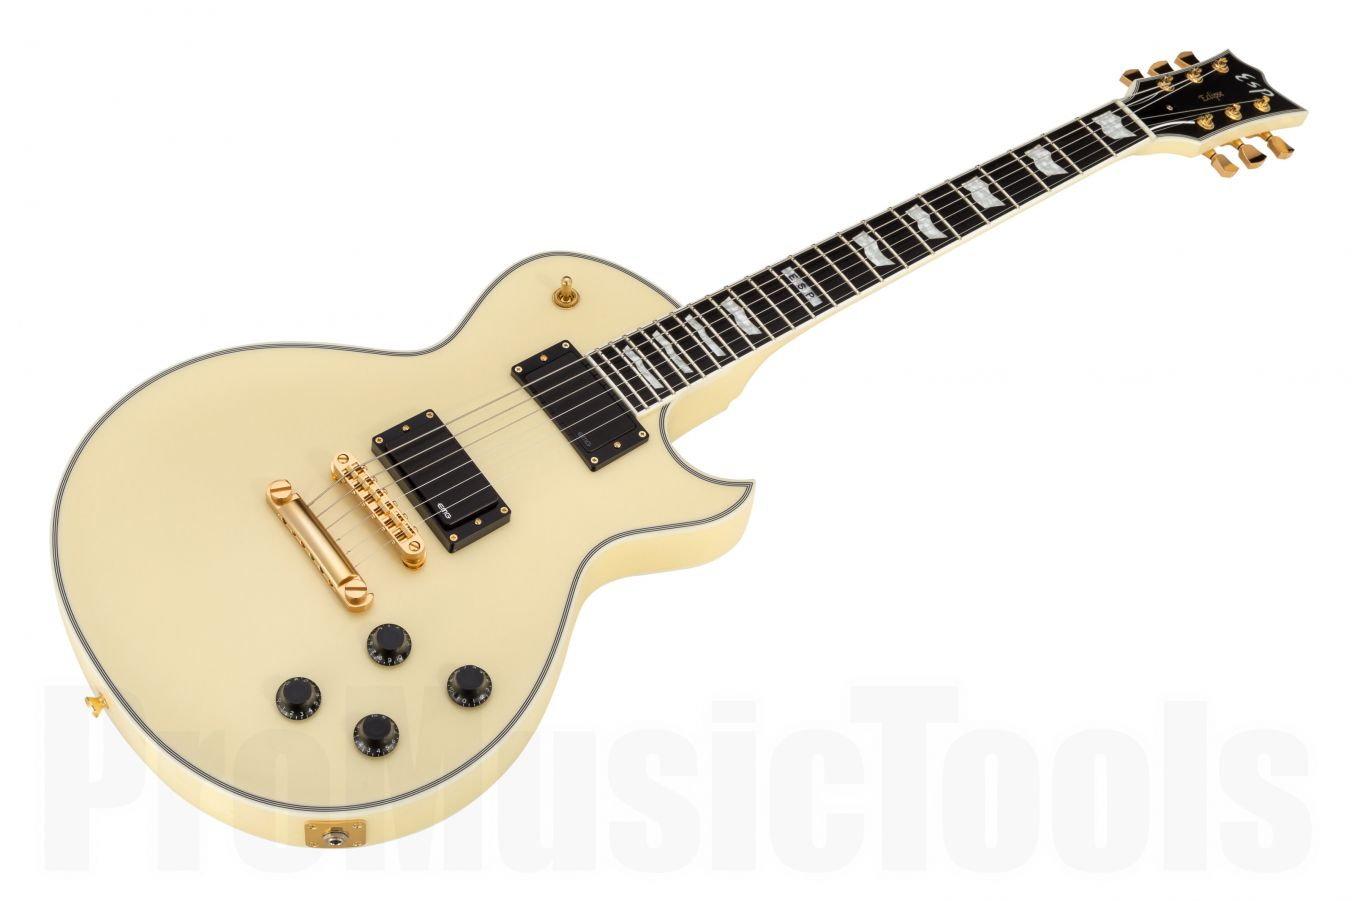 ESP Eclipse-I CTM FT EMG VW Special Edition - Vintage White - Full Thickness